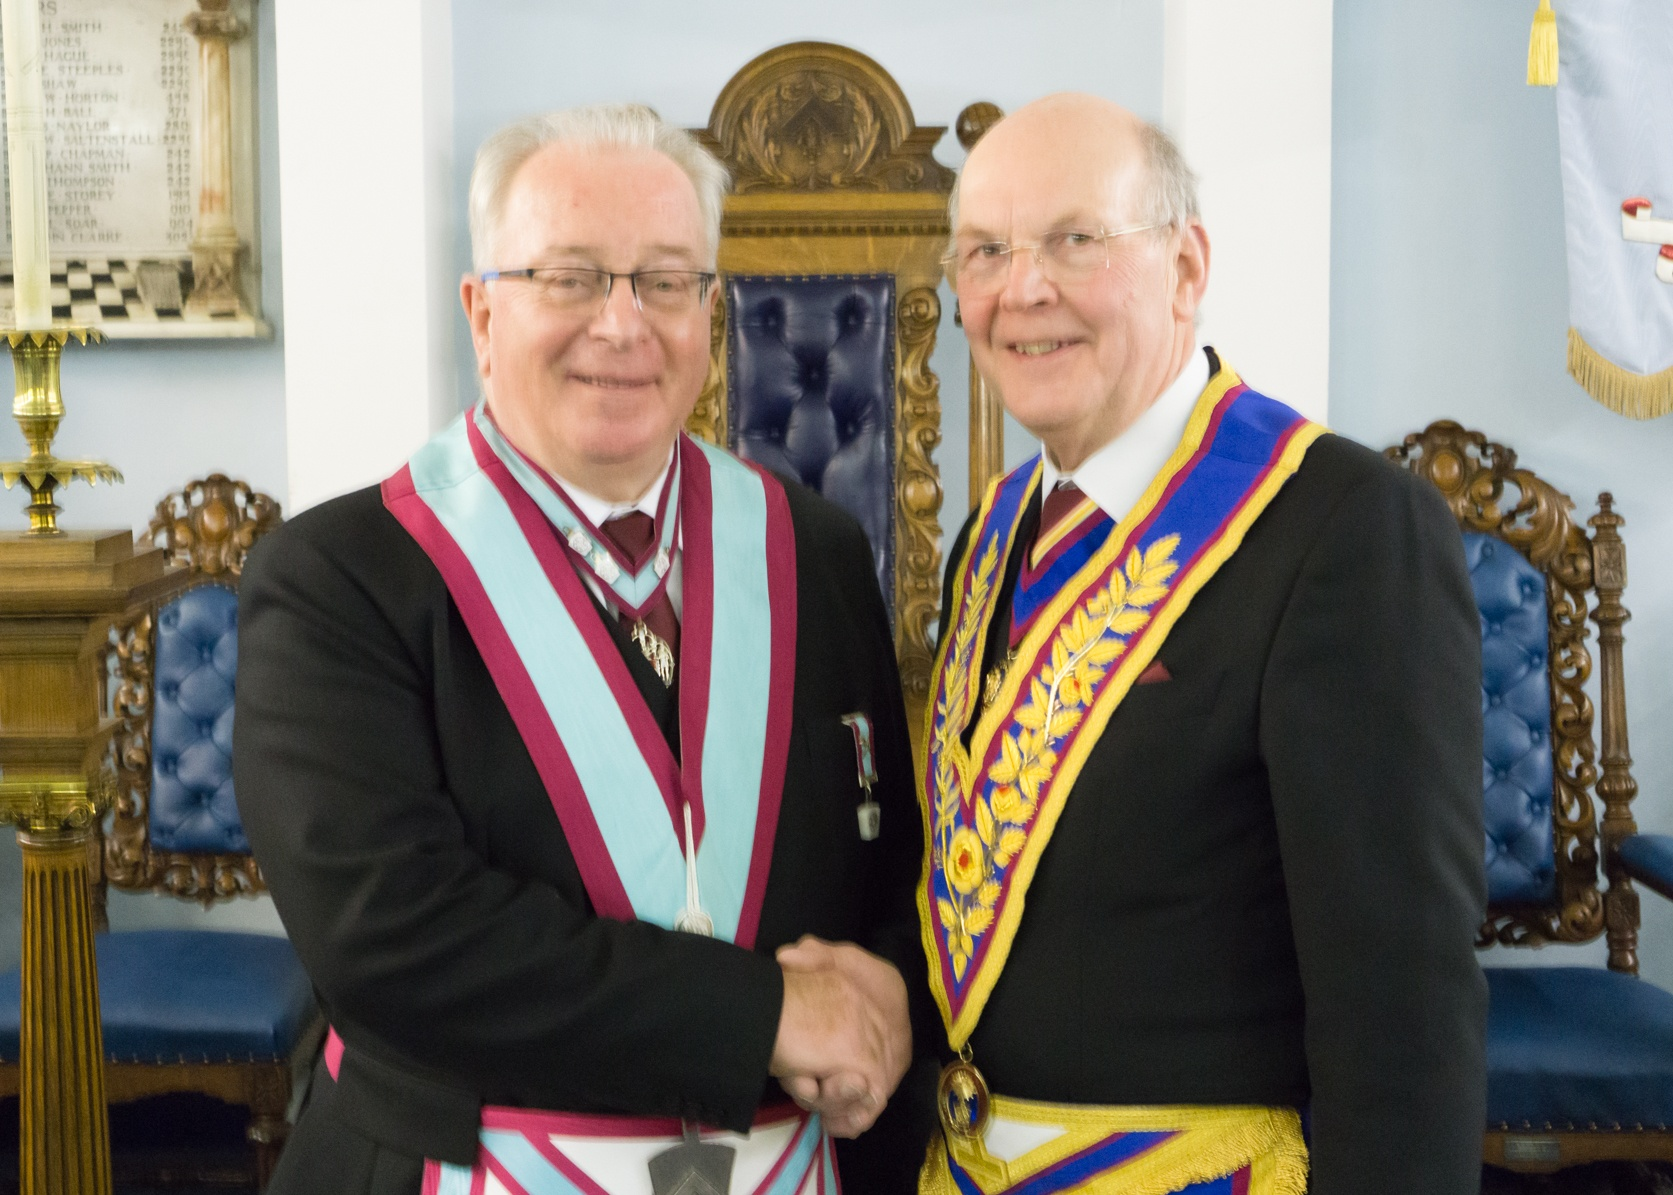 Gothic Lodge of MMM No 1018 welcomes Bro Ian Wright as it's WM for the ensuing year.